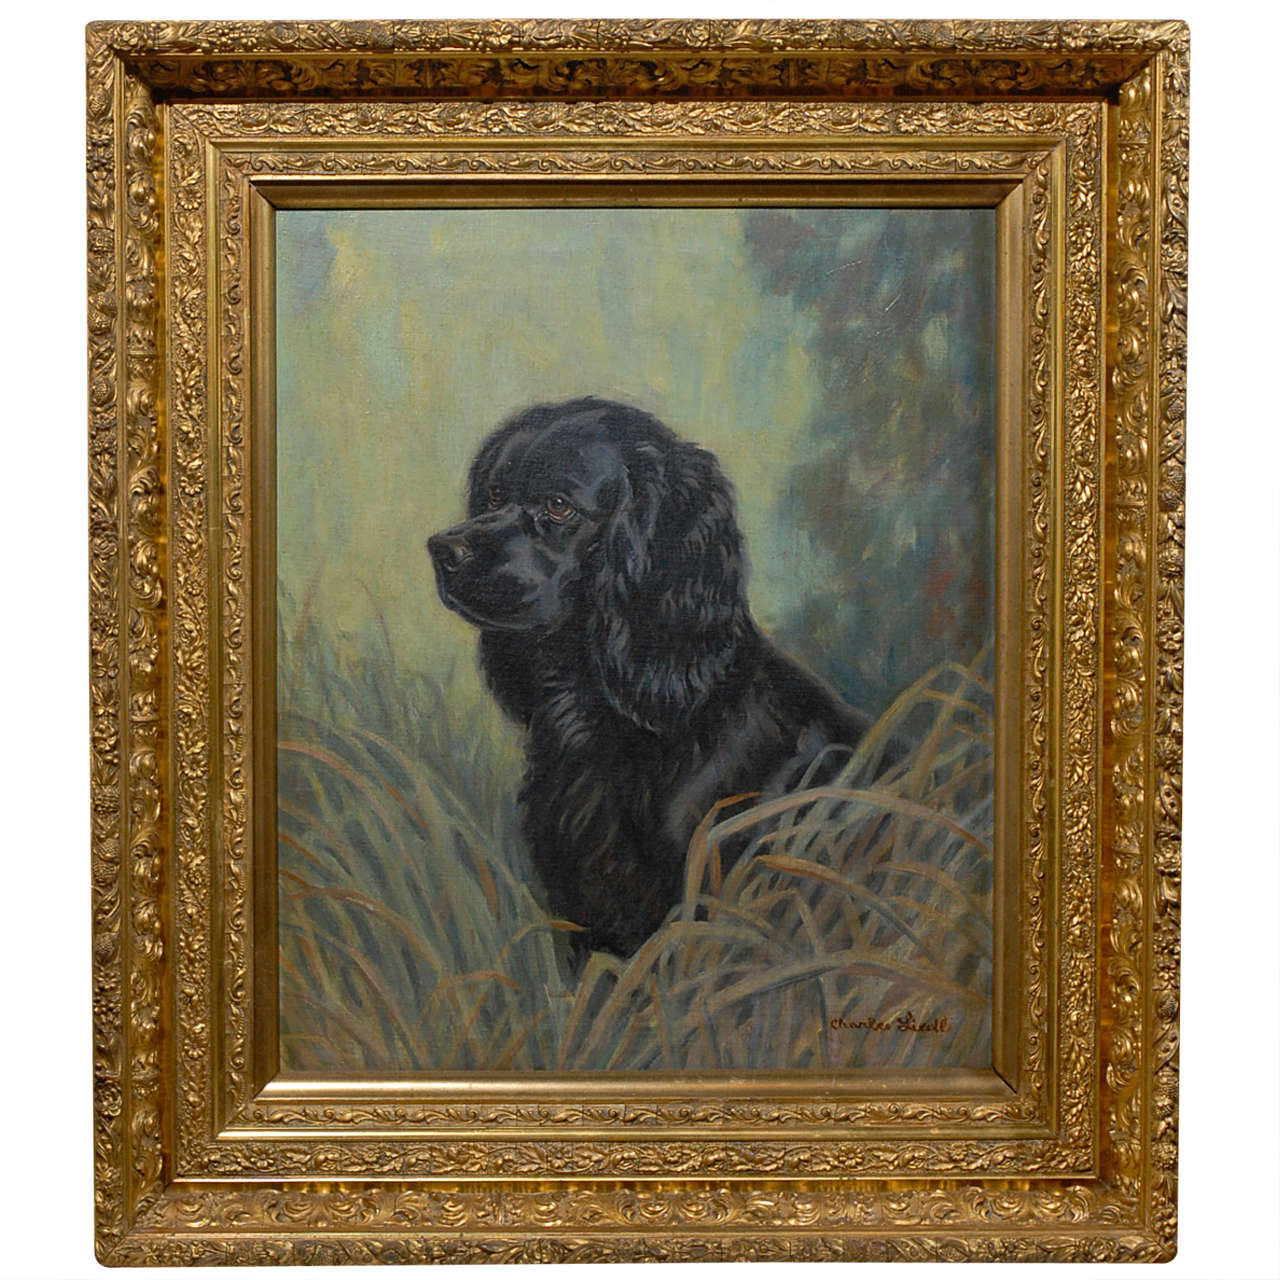 American Oil Painting of Black Dog in Four-Tier Giltwood Frame, circa 1930